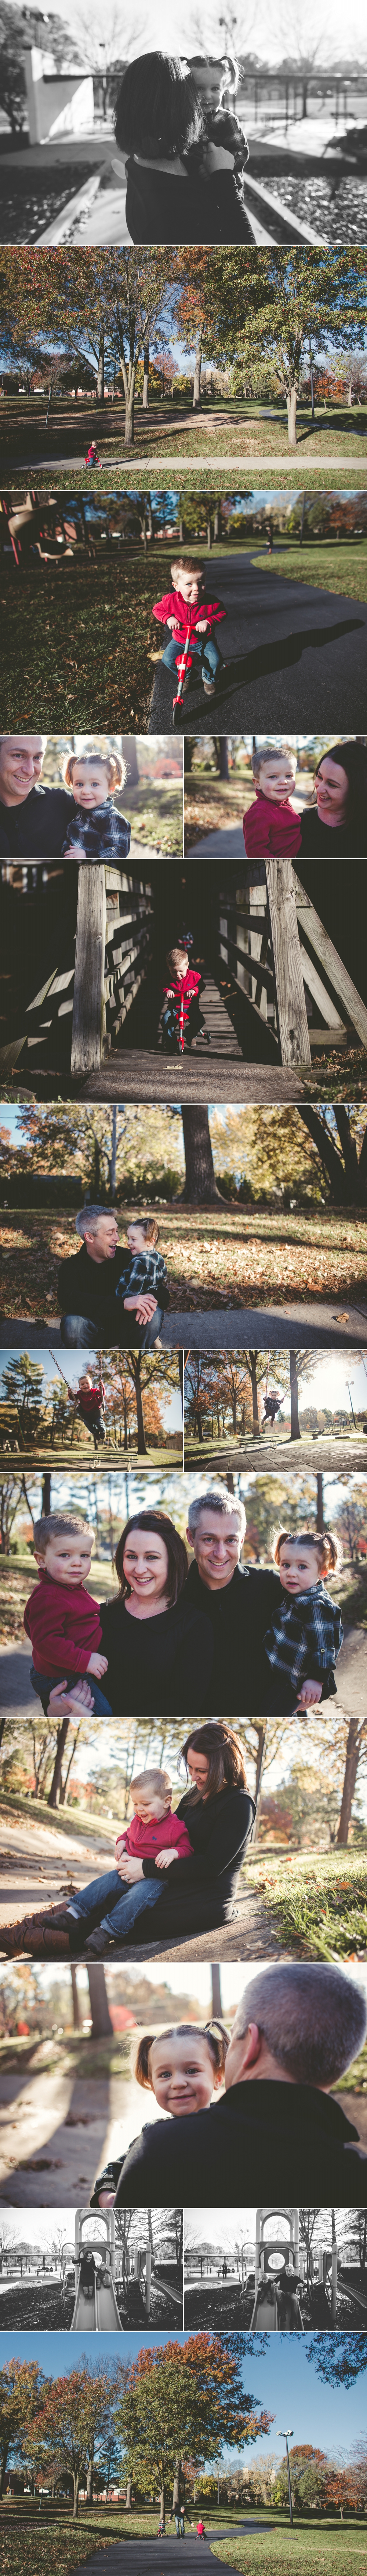 kansas_city_family_photo_session_portraits_jason_domingues_photography_windsor_park